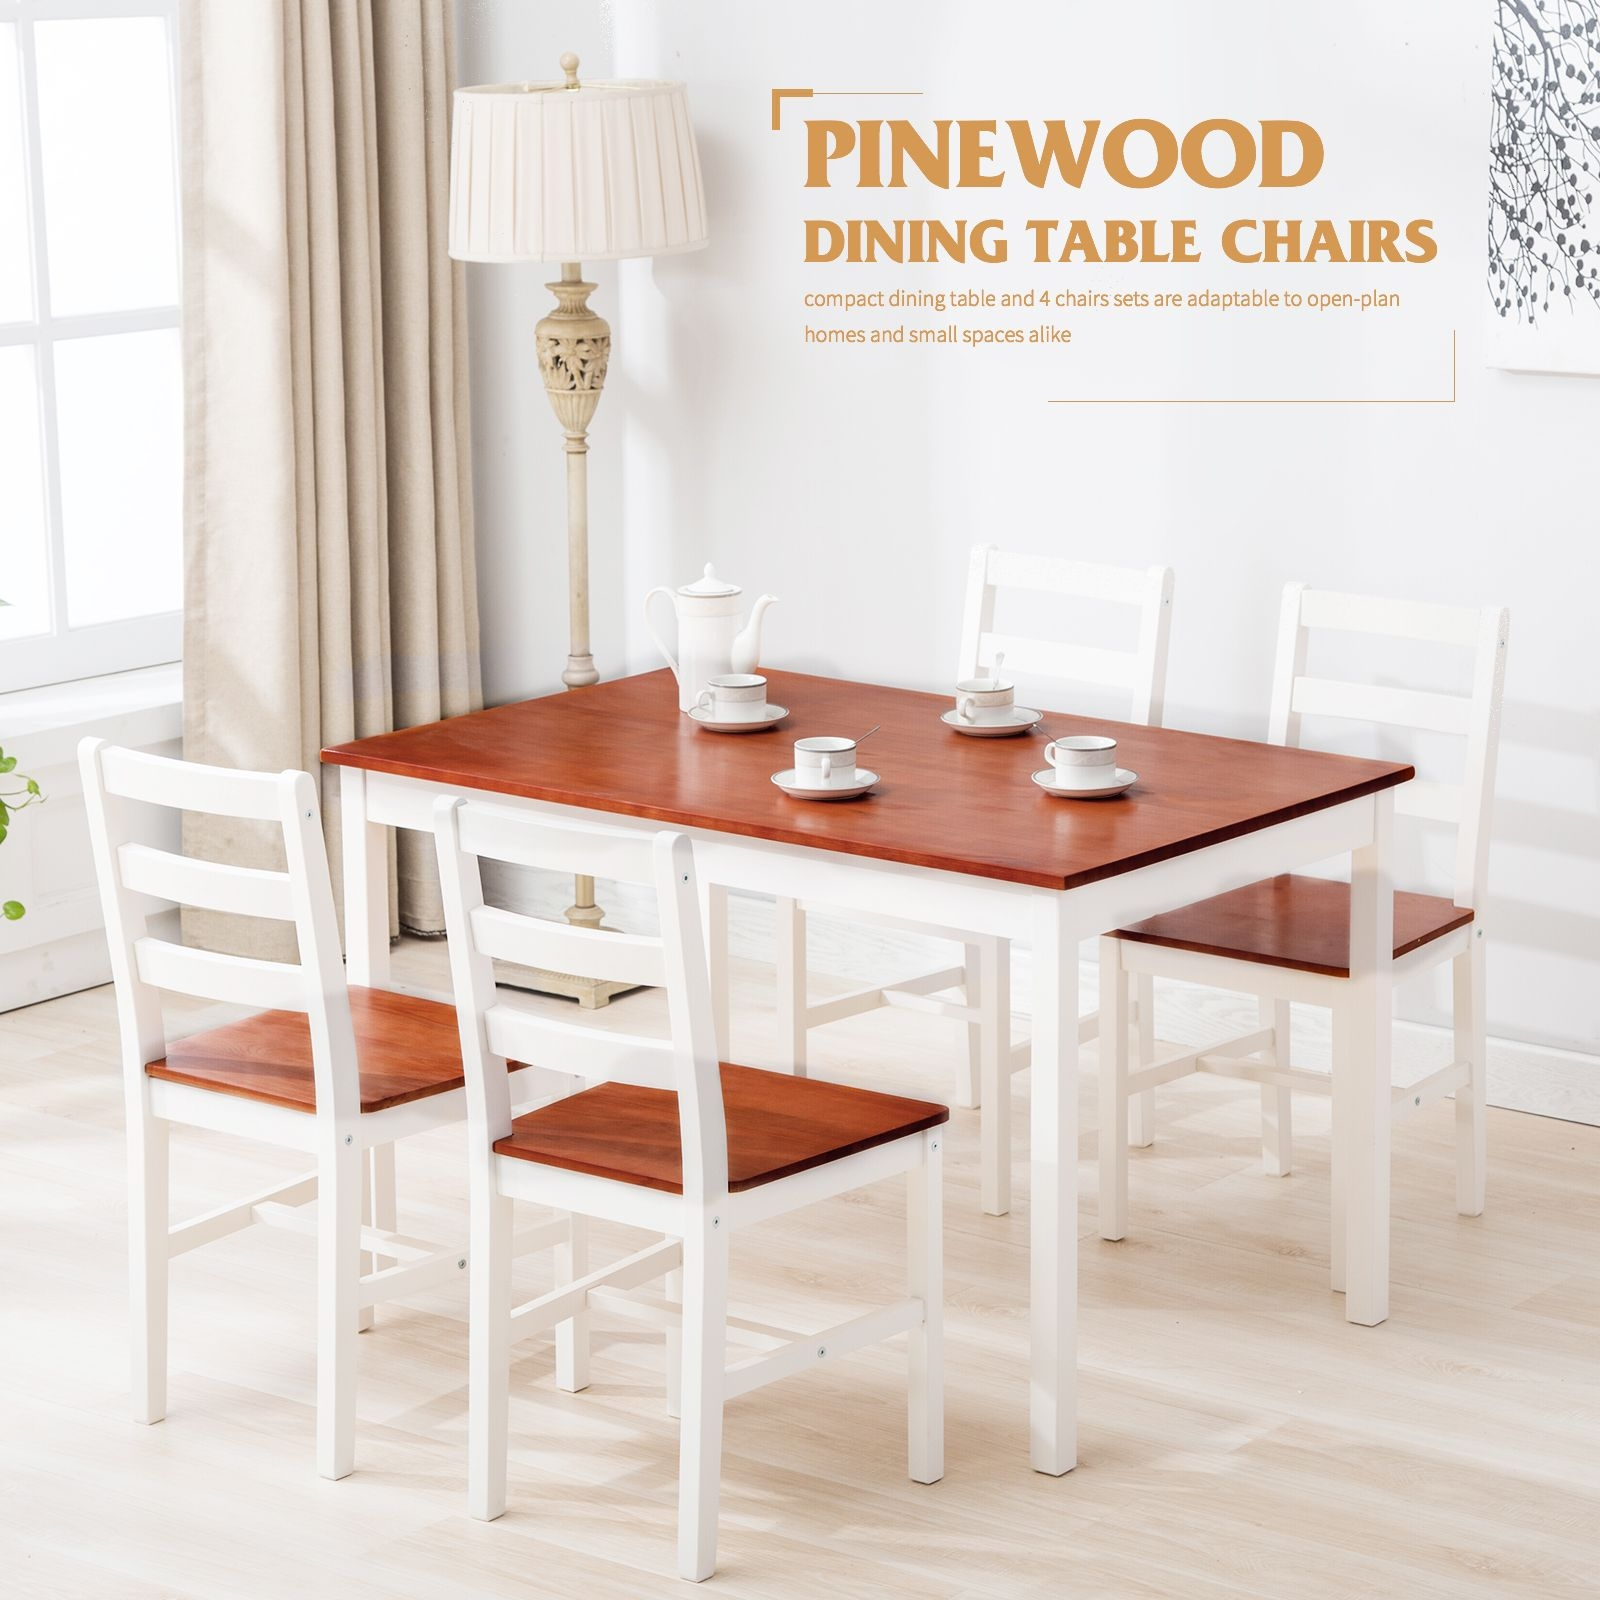 5 Piece Pine Wood Dining Table And Chairs Dining Table Set Kitchen Dining Room 733430877606  Ebay